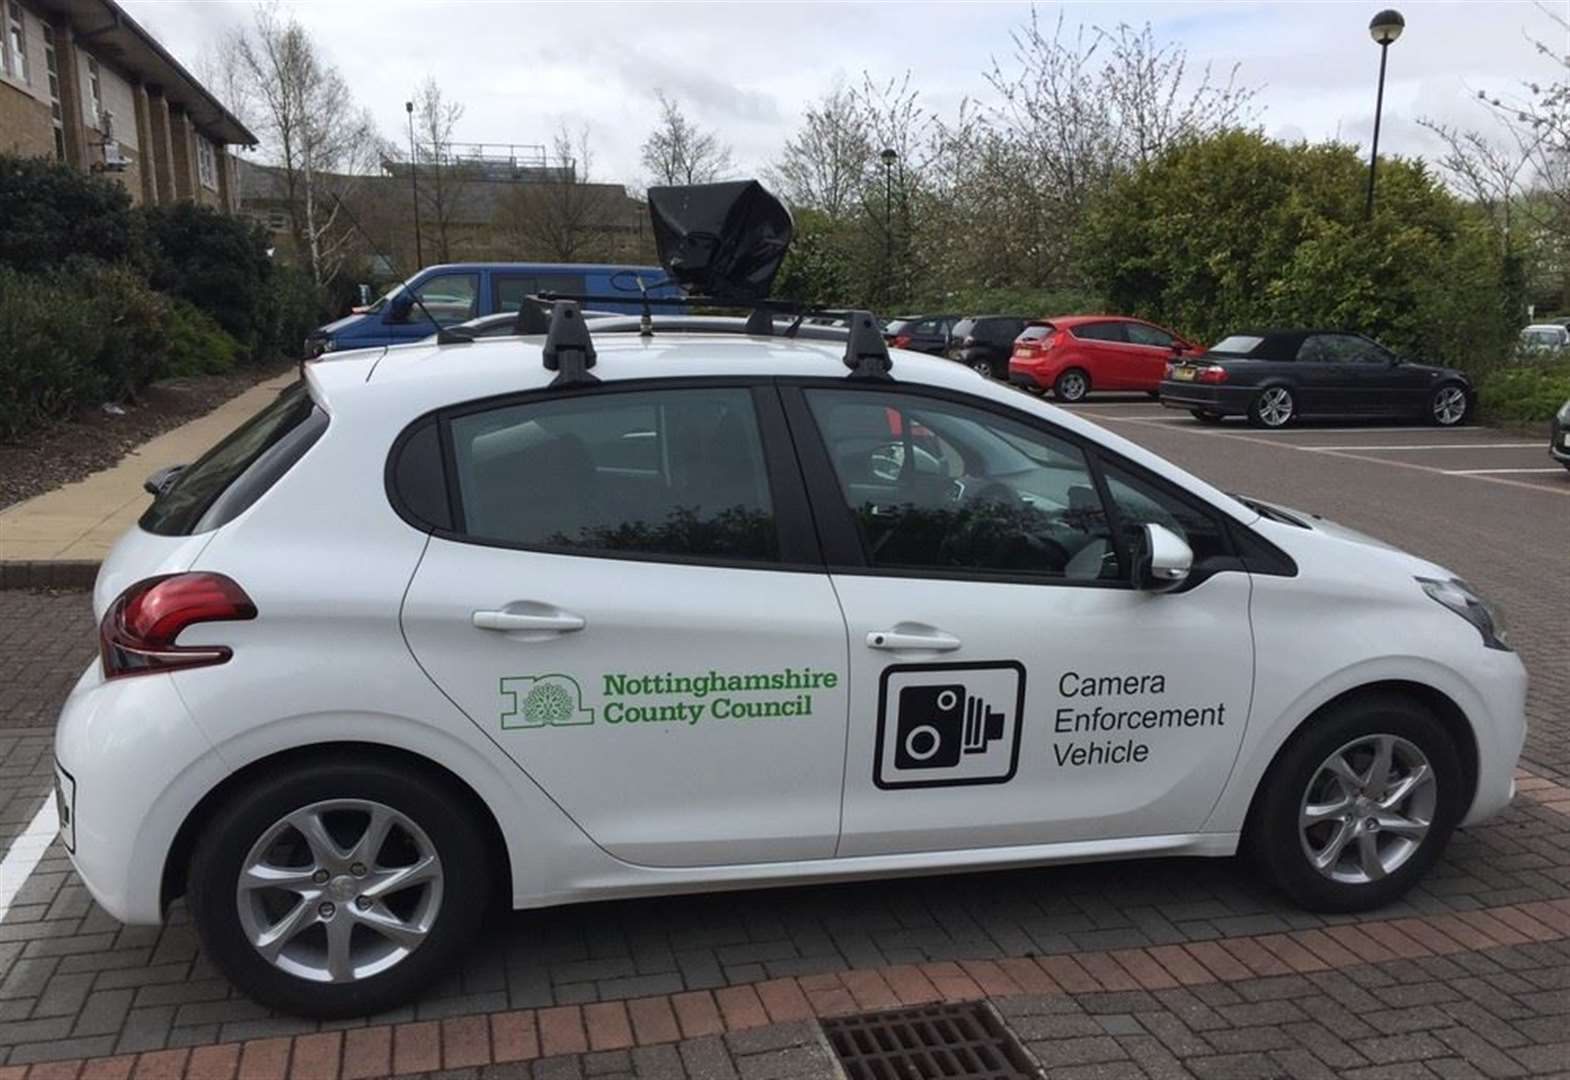 Another CCTV car to crackdown on parents parking illegally on the school run